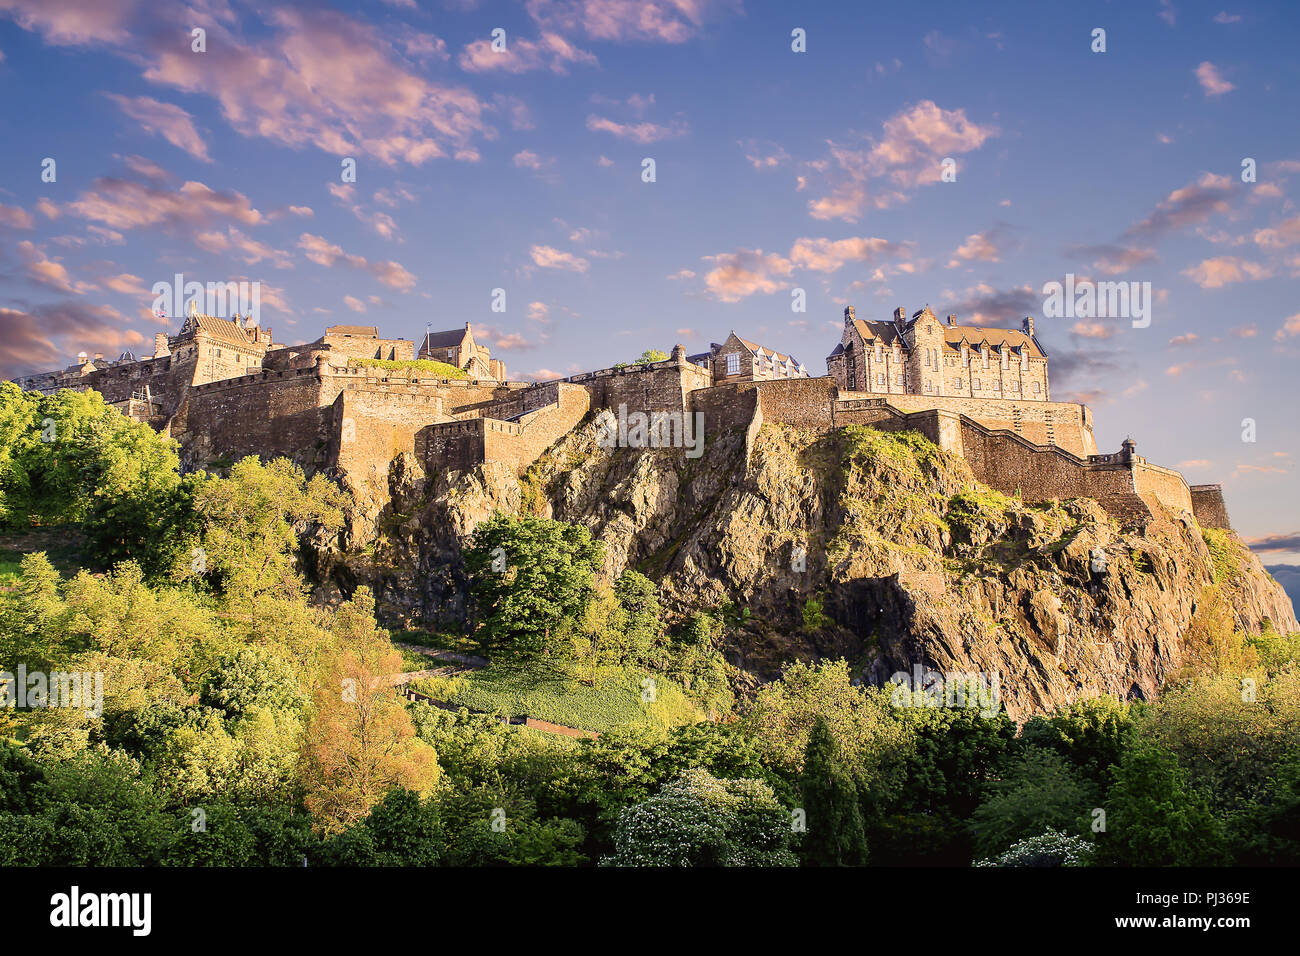 Beautiful landscape of Edinburgh Castle at sunset - Stock Image